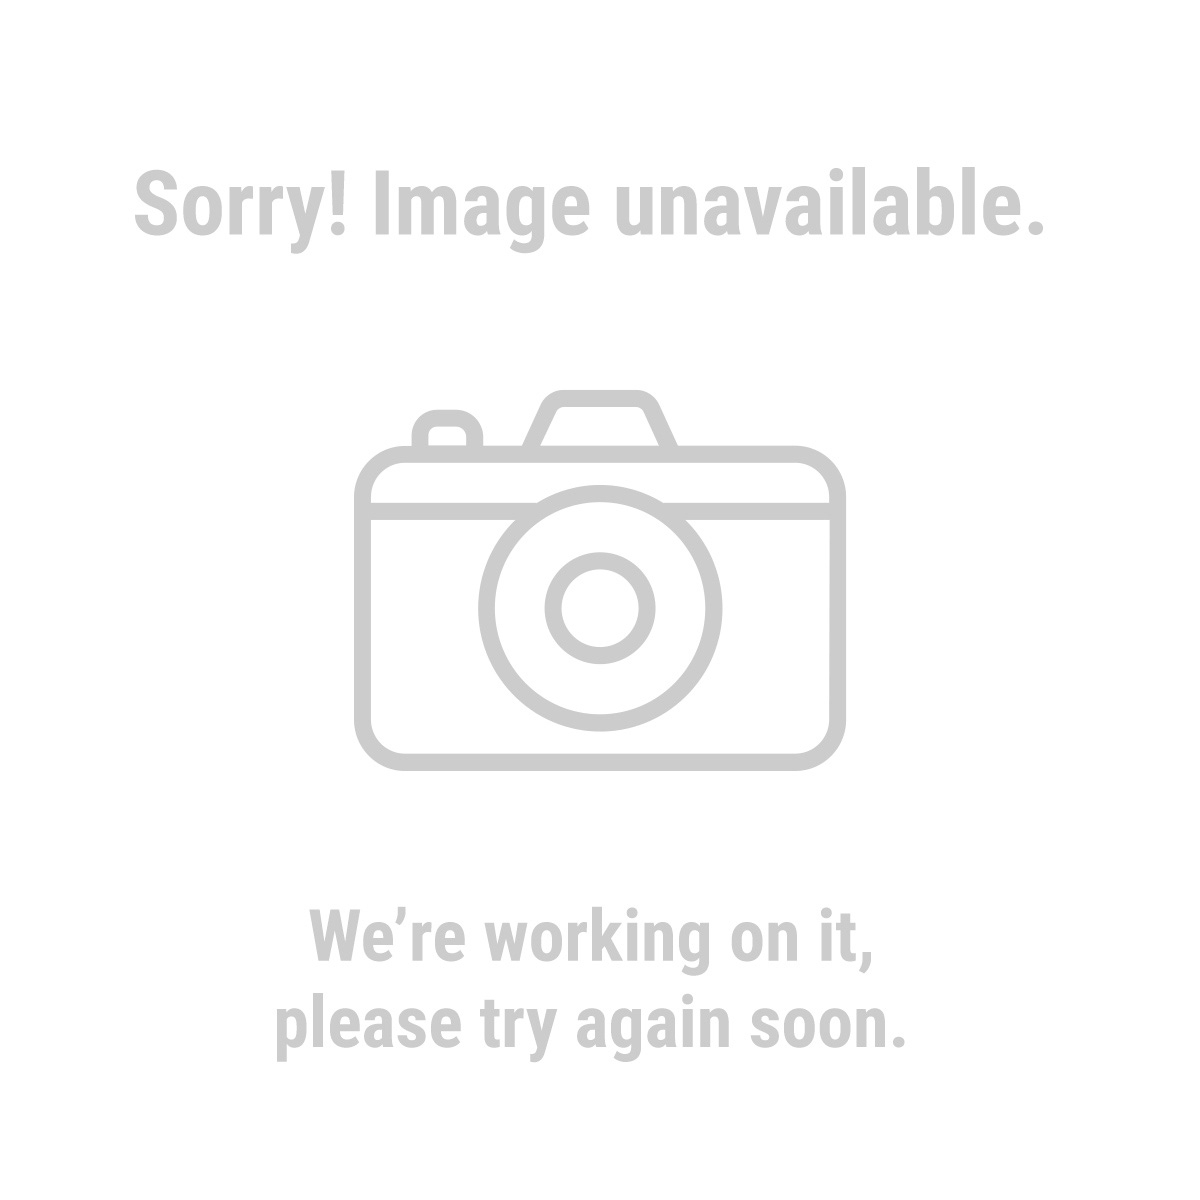 66812 3 Piece Soft Grip Wide Brush Set